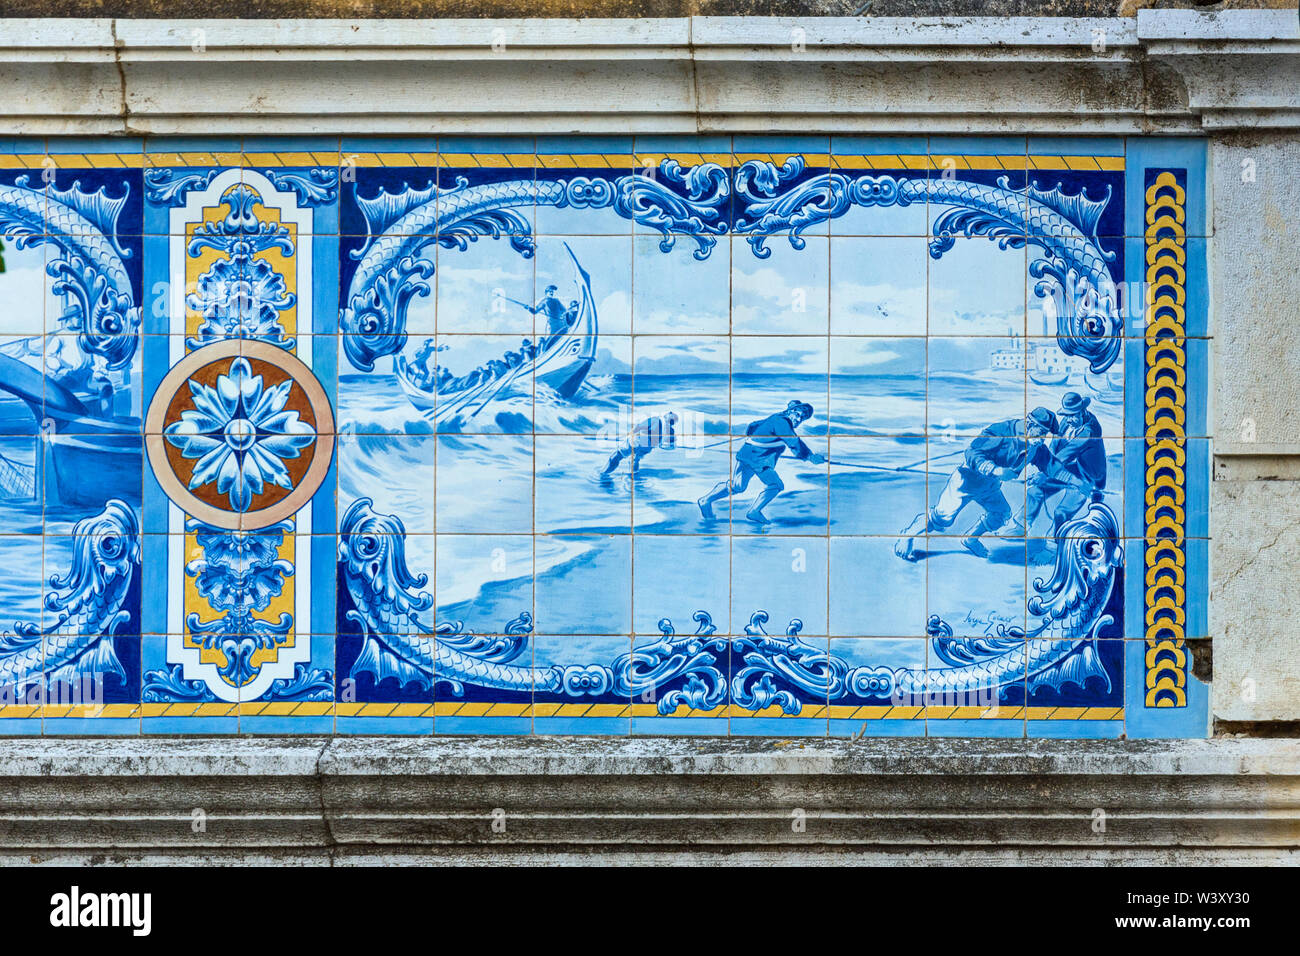 Traditional azulejo panels in blue and white represent fishing boat on the facade of an old villa of a wealthy industrialist. - Stock Image